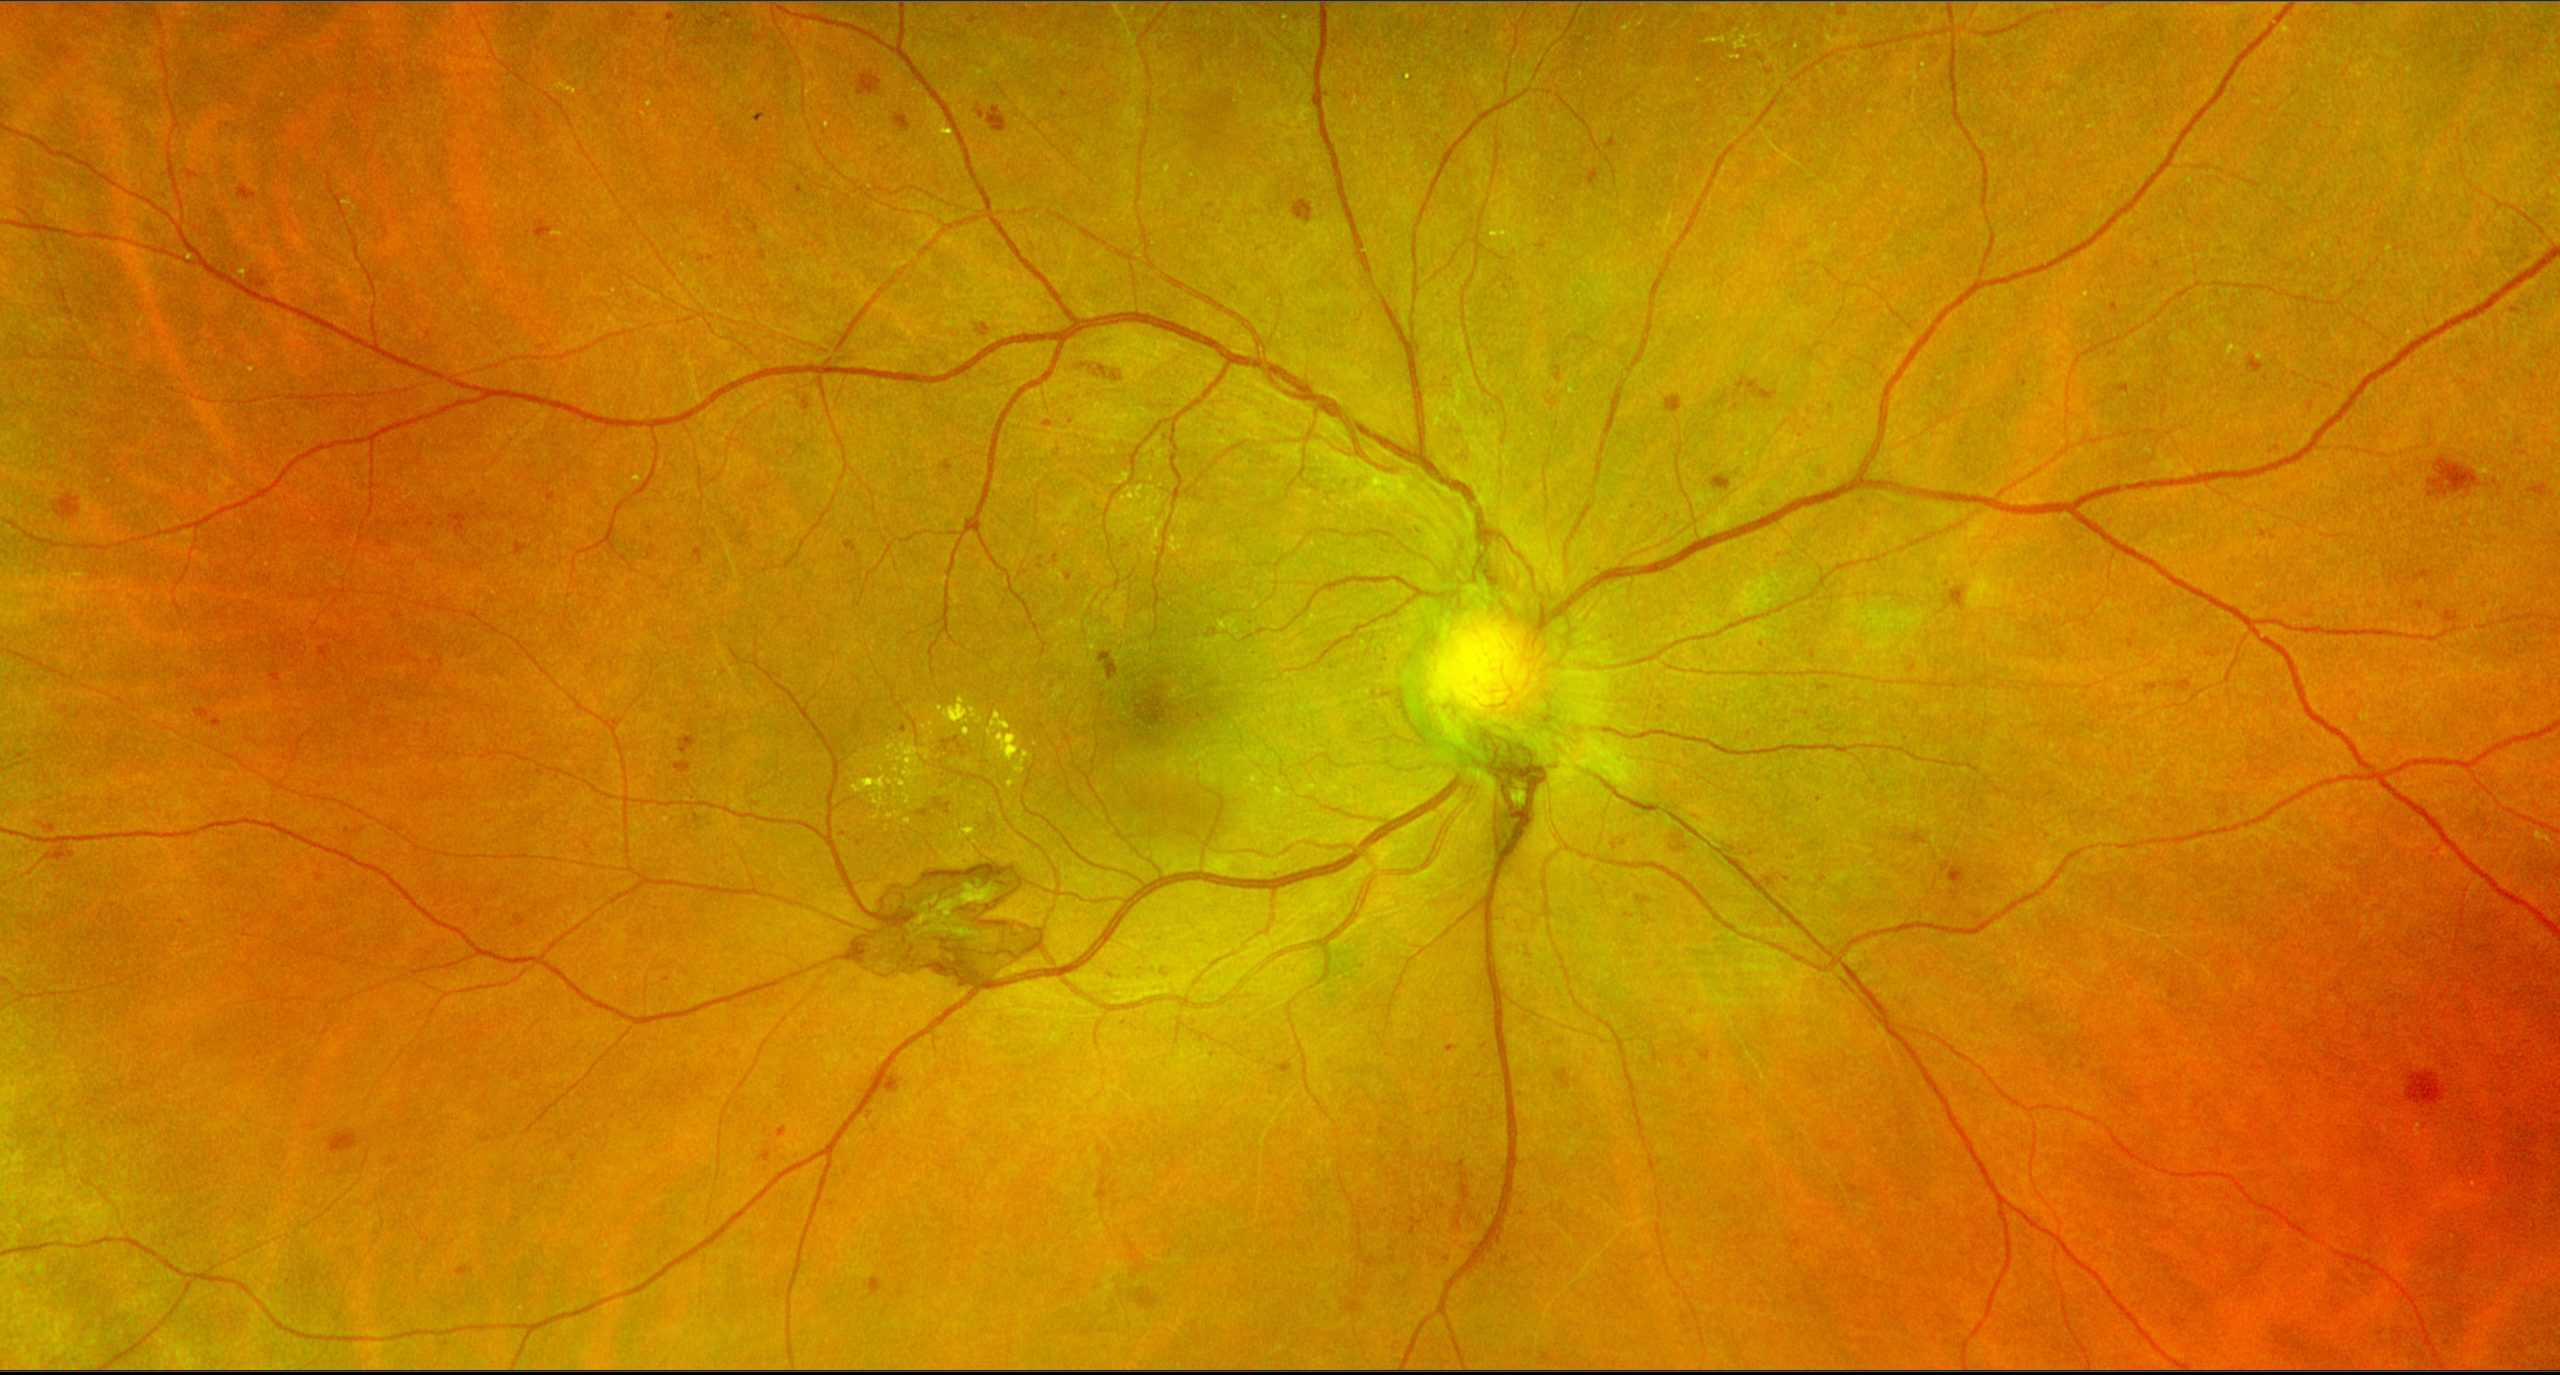 Diabetic retinopathy home page image 2 scaled